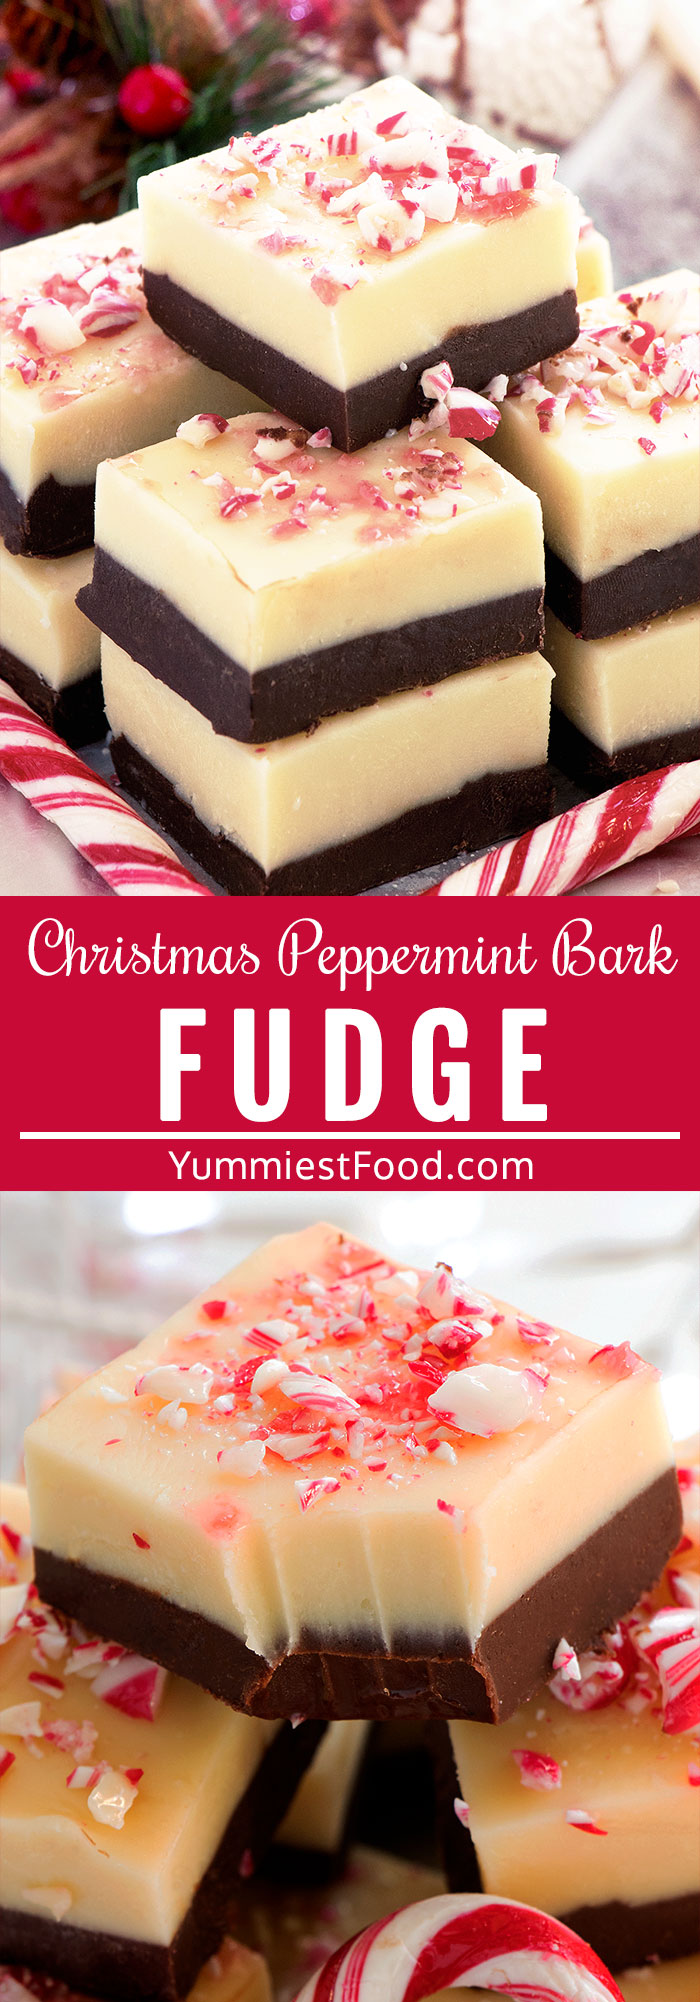 "Christmas Peppermint Bark Fudge - For the real taste of Christmas try Peppermint Bark Fudge - ""After Eight"" and candy canes flavored, dark and white chocolate layered, no-bake adorable fudge! So easy and fast to make, 6 ingredients only! #christmas #christmasrecipes #desserts #dessert #dessertrecipes #dessertfoodrecipes #easyrecipes #ChristmasFudge #peppermint #FudgeRecipe #fudge #peppermintfudge"